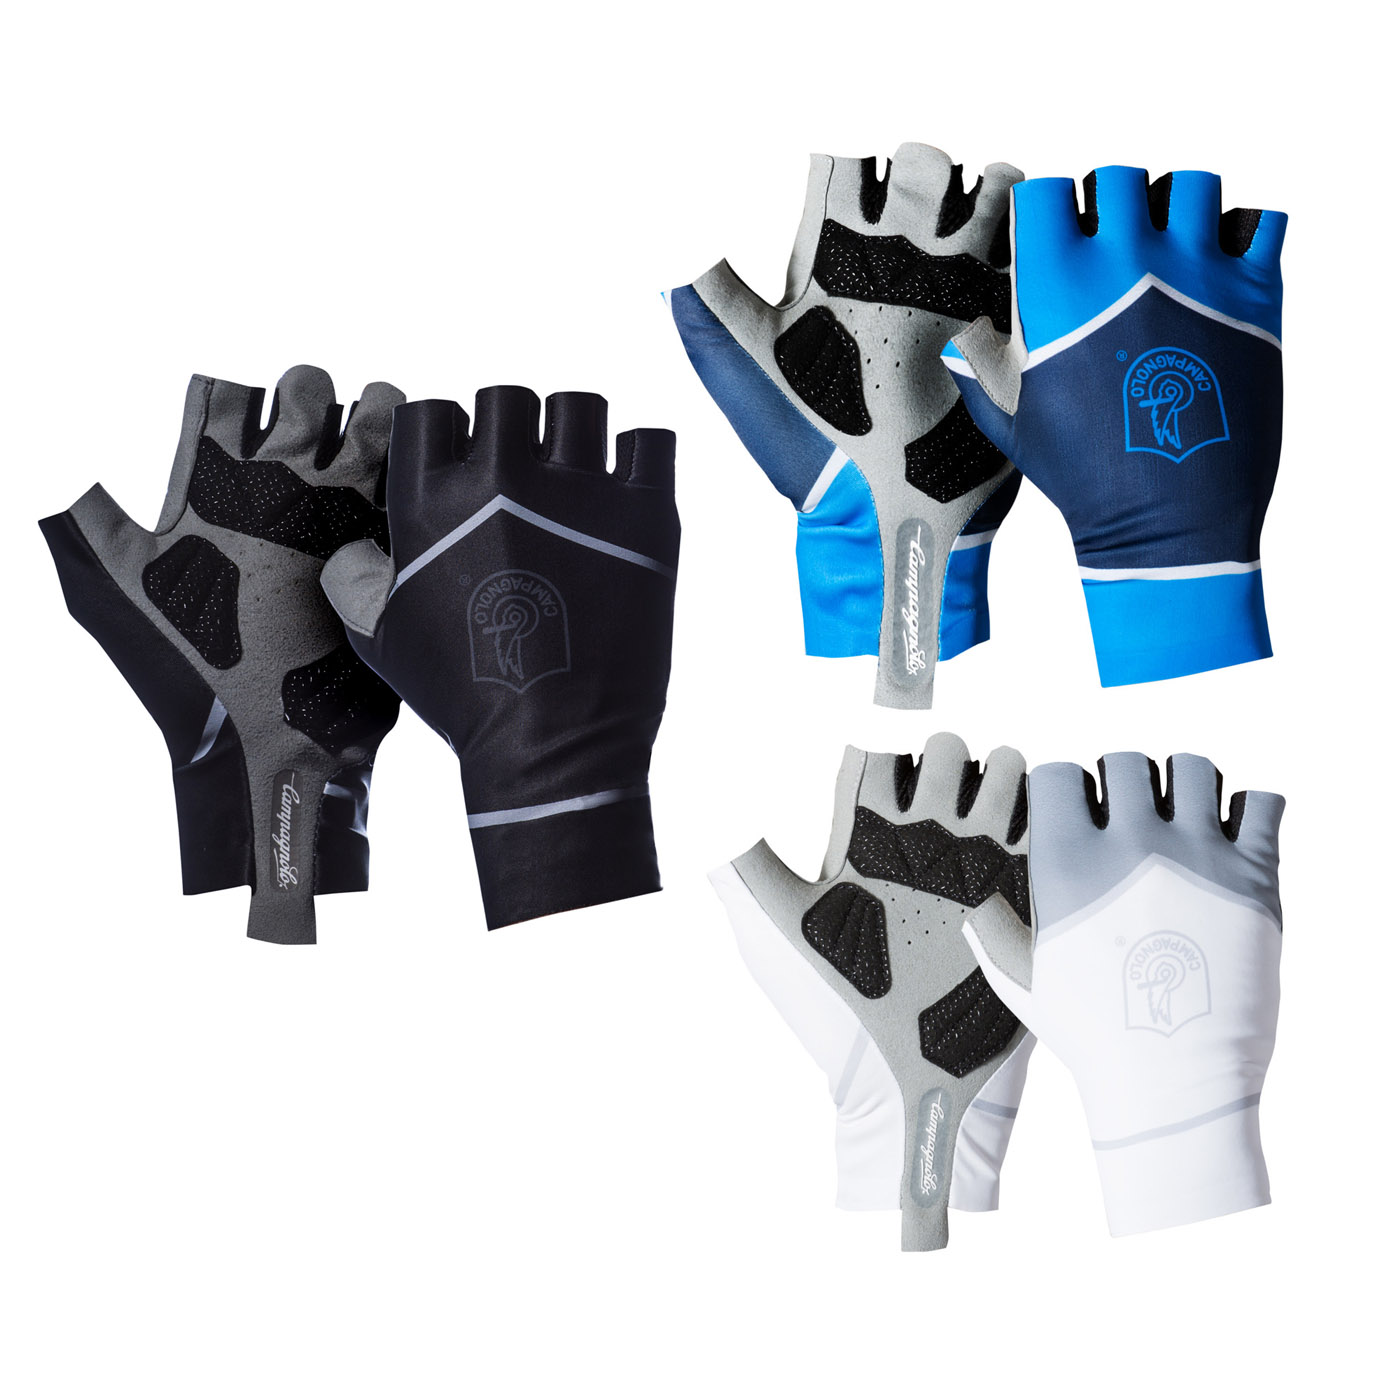 CAMPAGNOLO カンパニョーロ C-TECH GLOVES C-テック グローブ